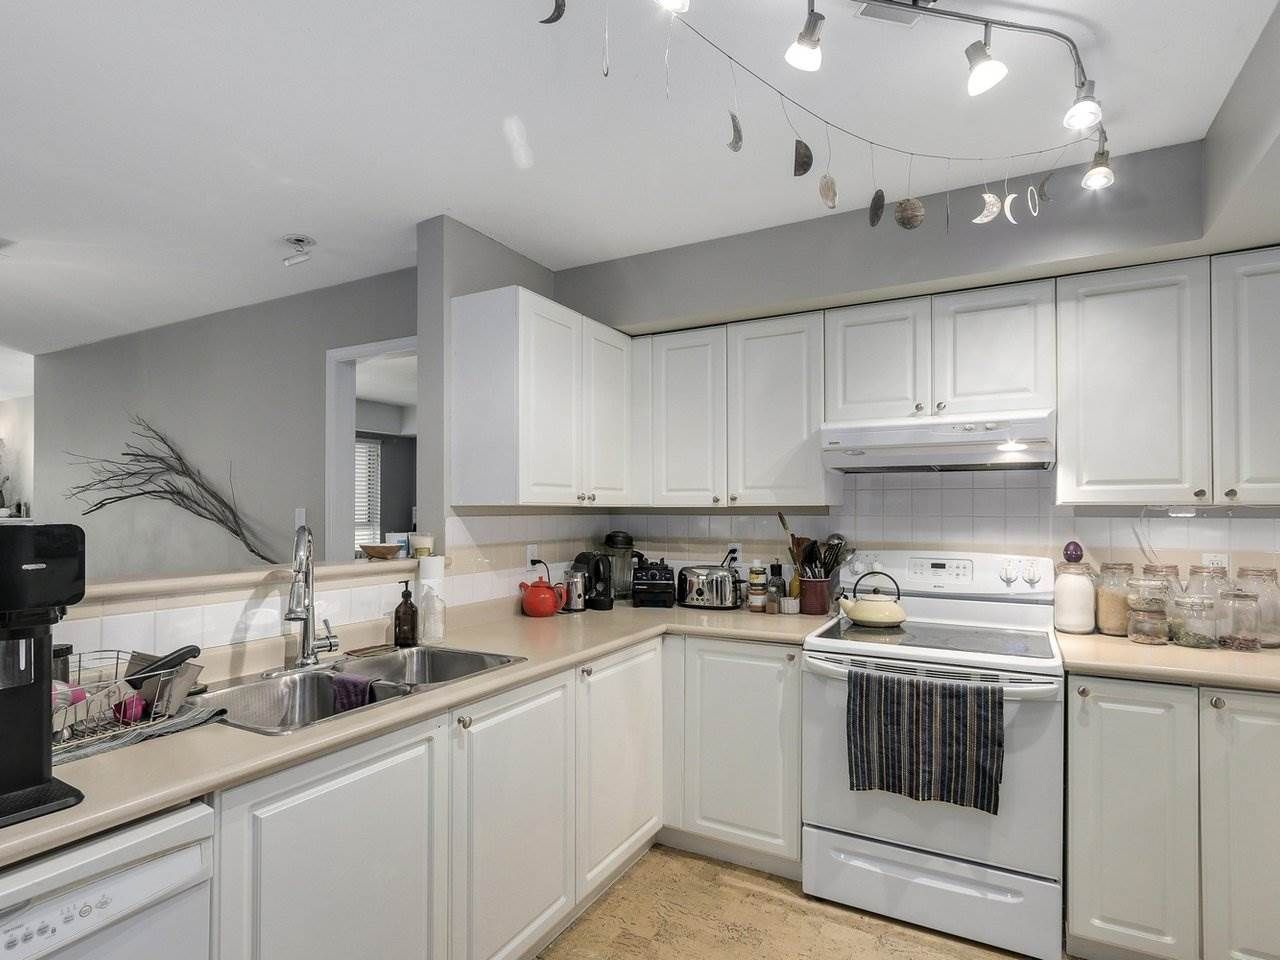 Photo 5: Photos: 305 225 E 19TH AVENUE in Vancouver: Main Condo for sale (Vancouver East)  : MLS®# R2173702